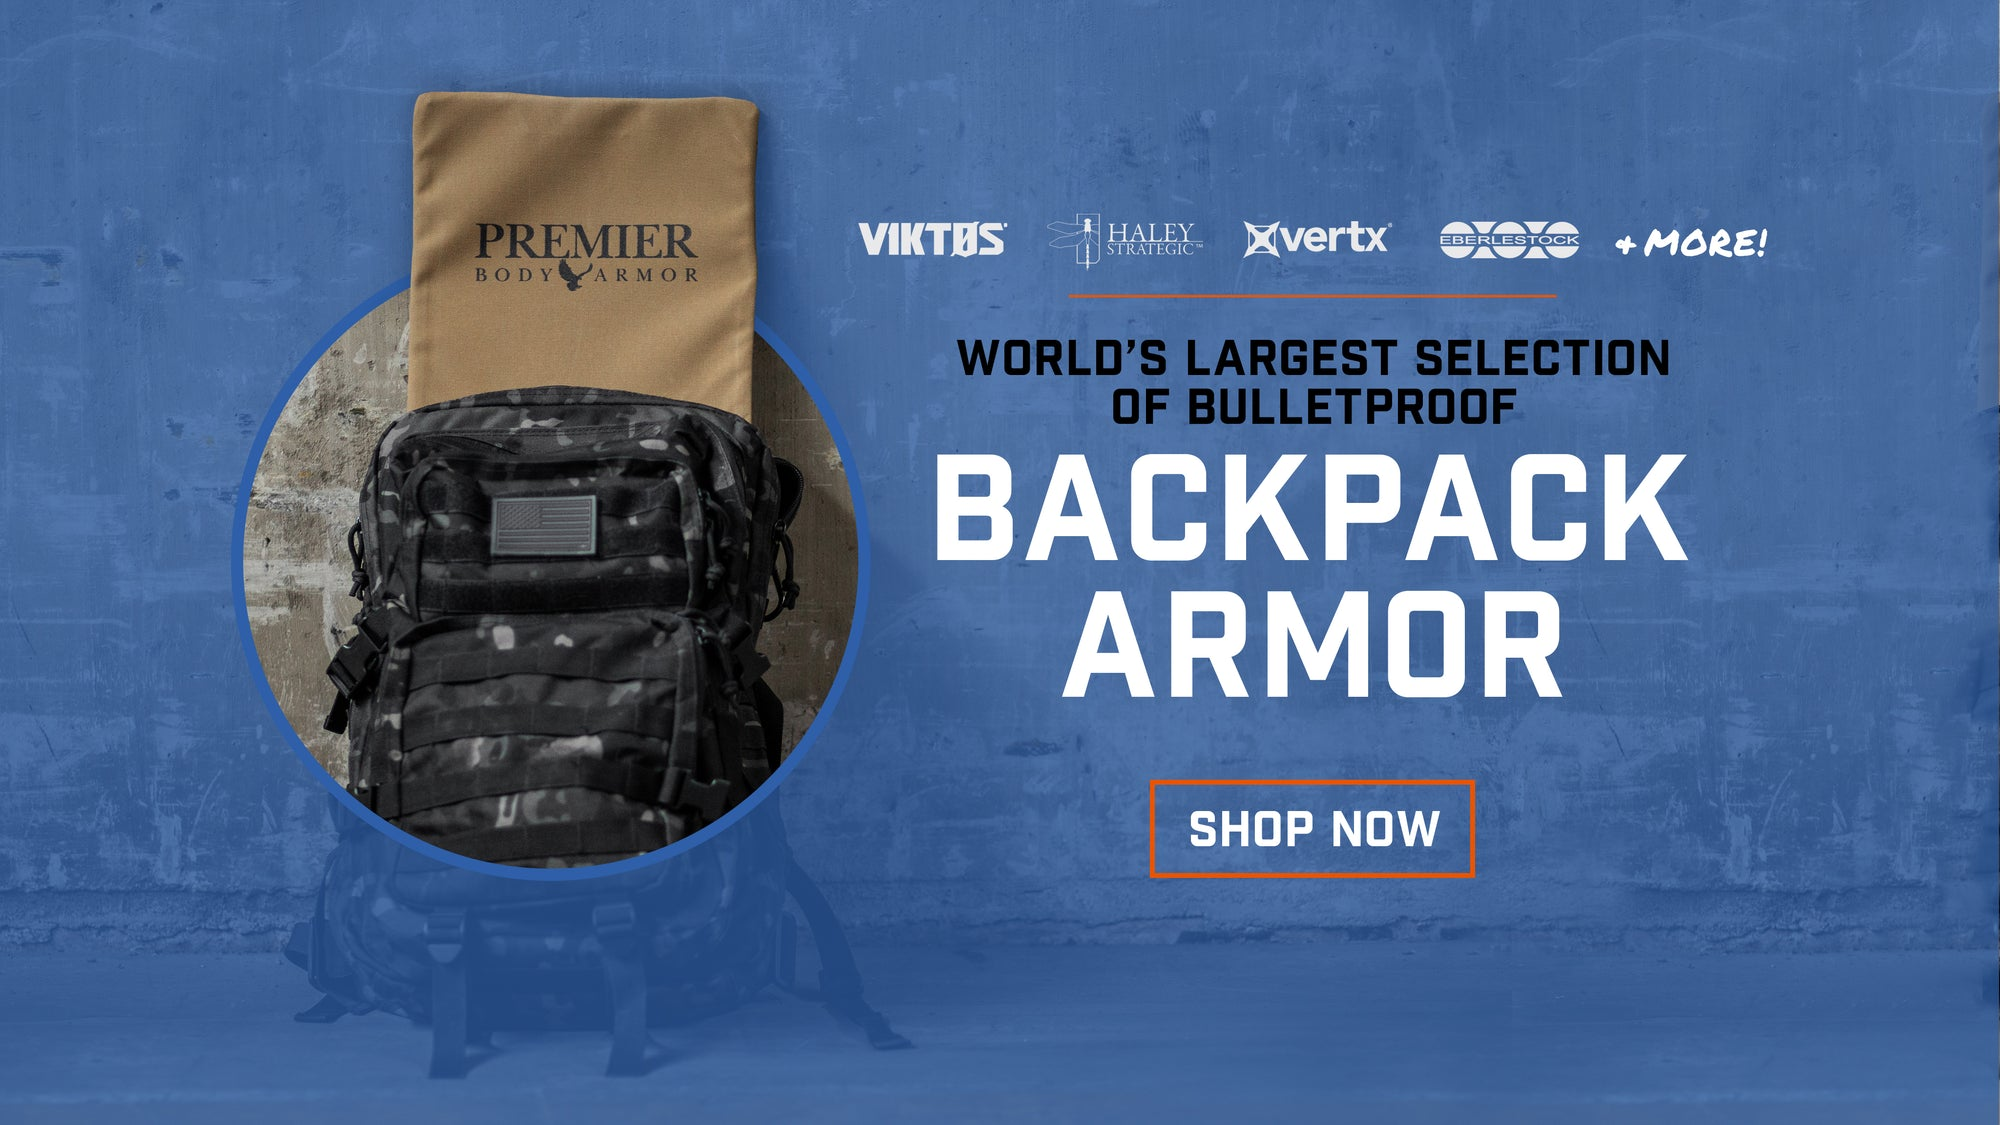 Shop the largest selection of backpack armor. We offer tailored fit soft level IIIA backpack panels for many brands like vertx, eberlestock, nike, adidas, etc. We also have Level III hard armor designed to fit in backpacks.